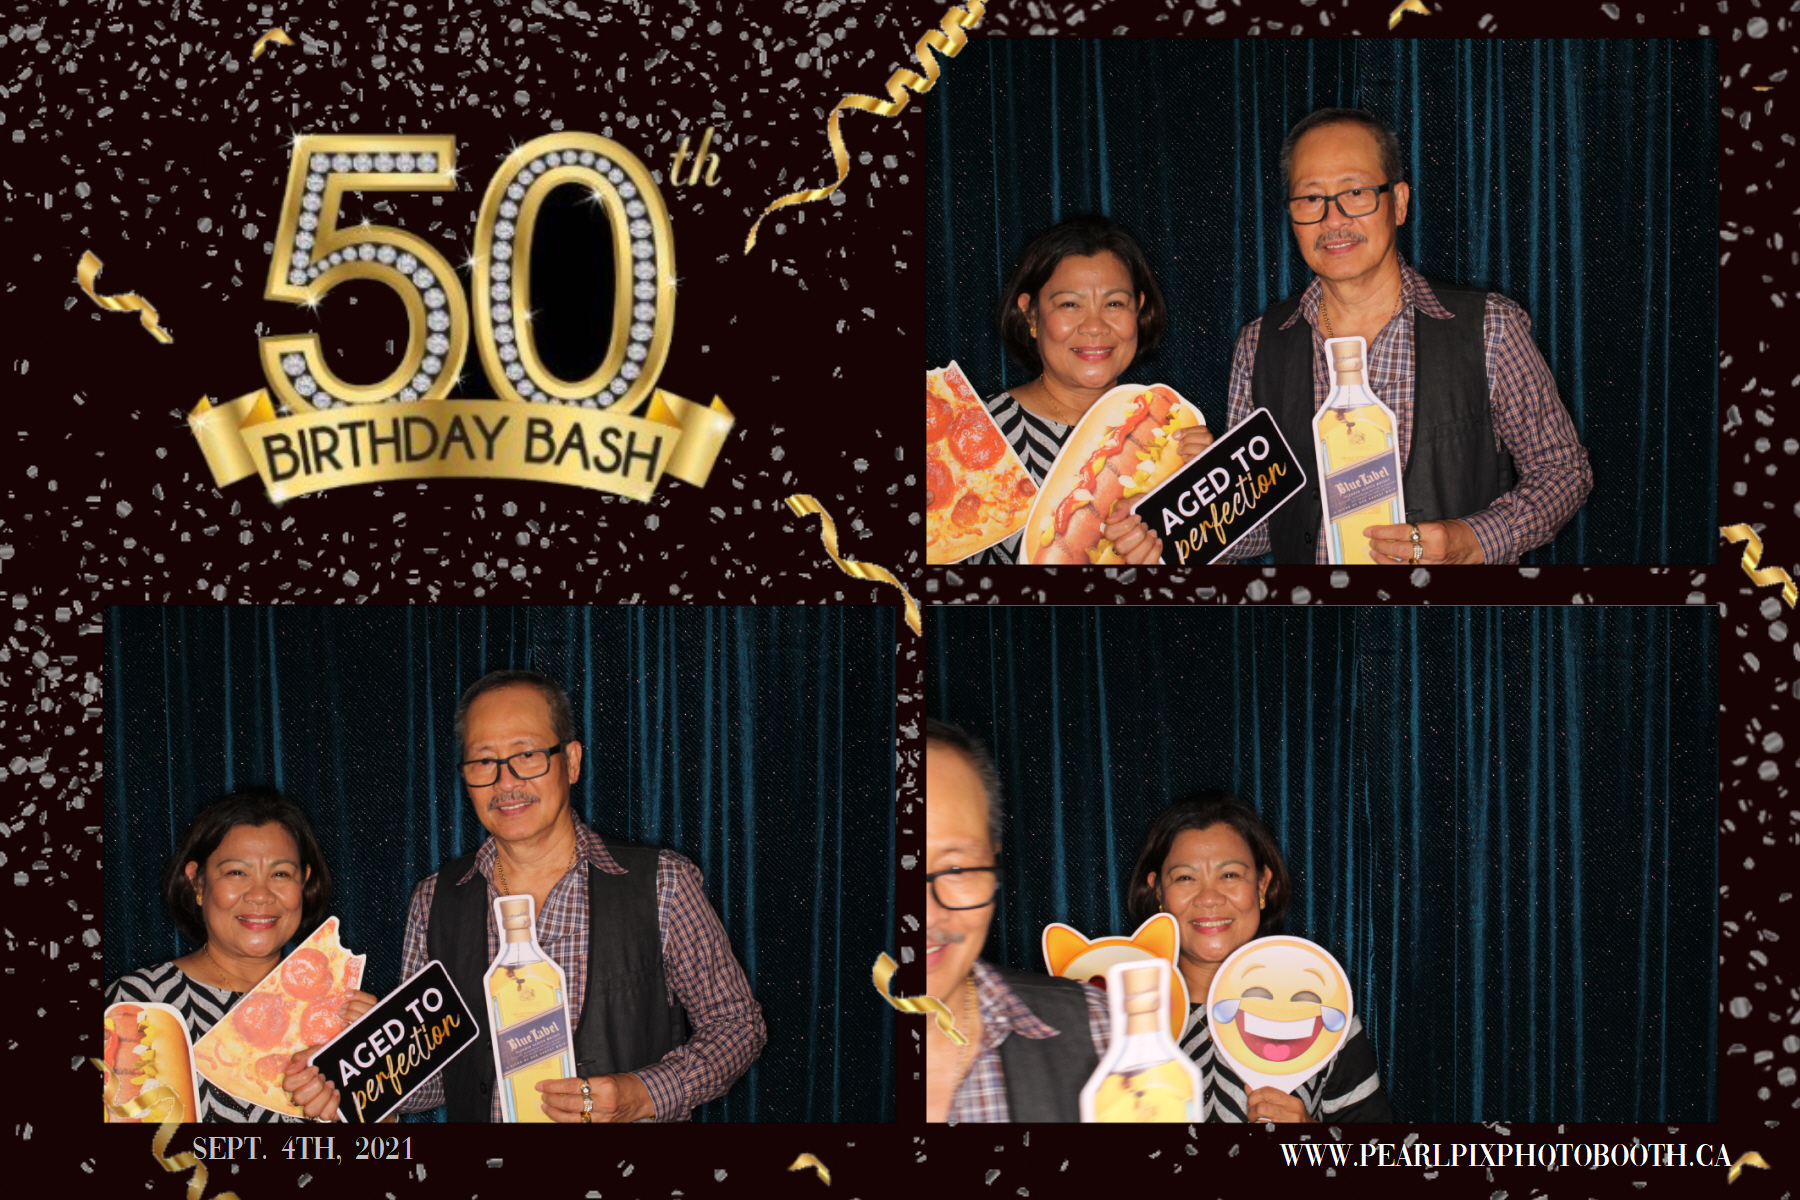 Peter_s 50th Bday_11